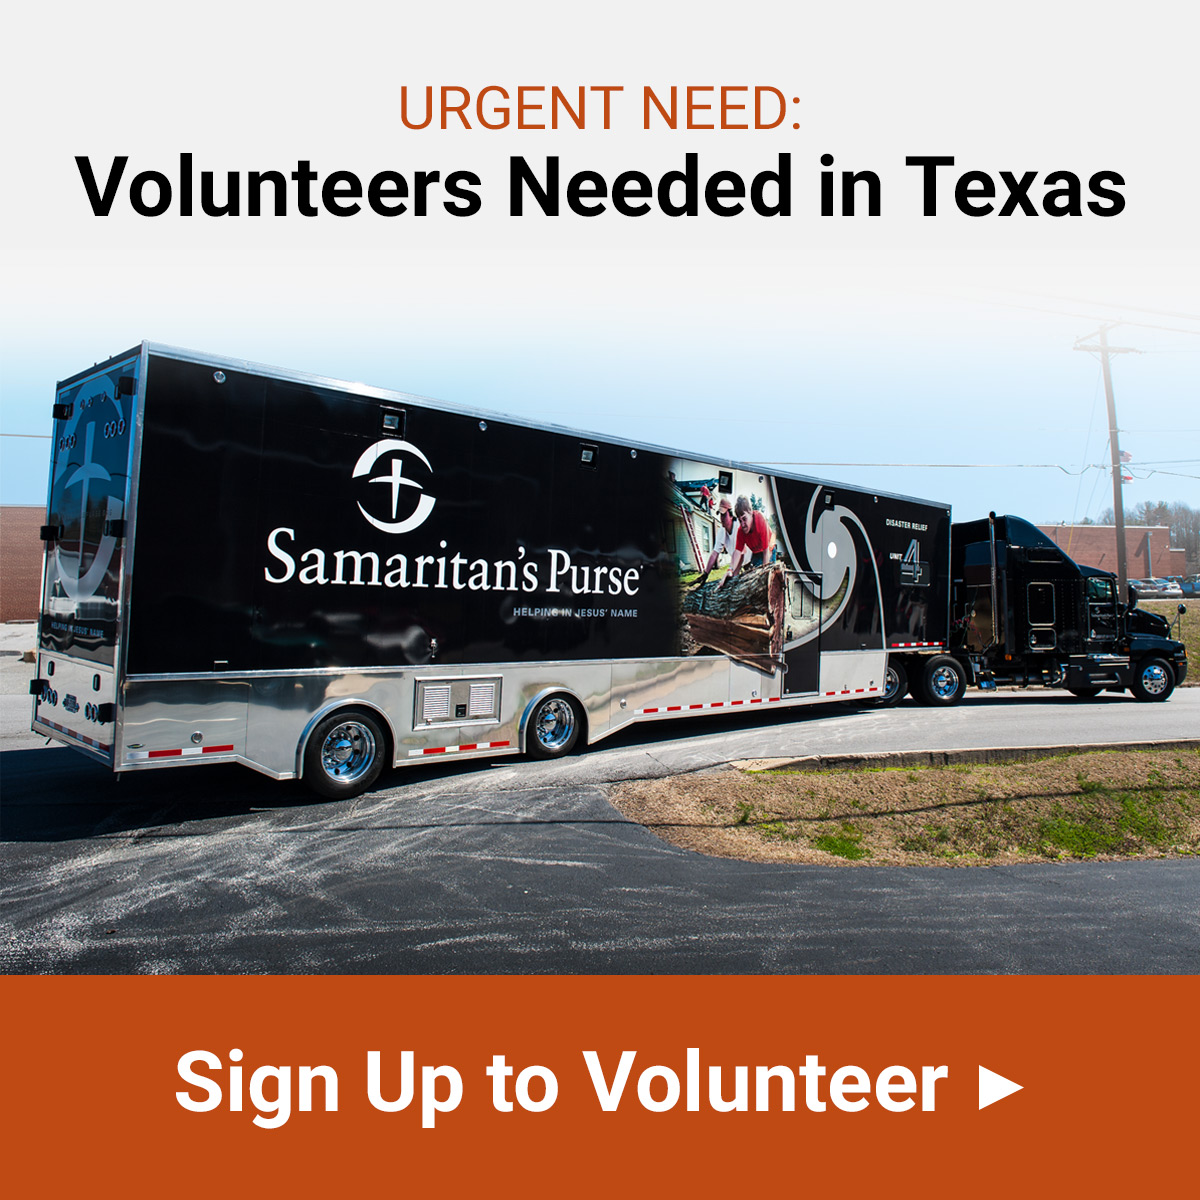 Volunteers Needed in Texas - Sign Up Now